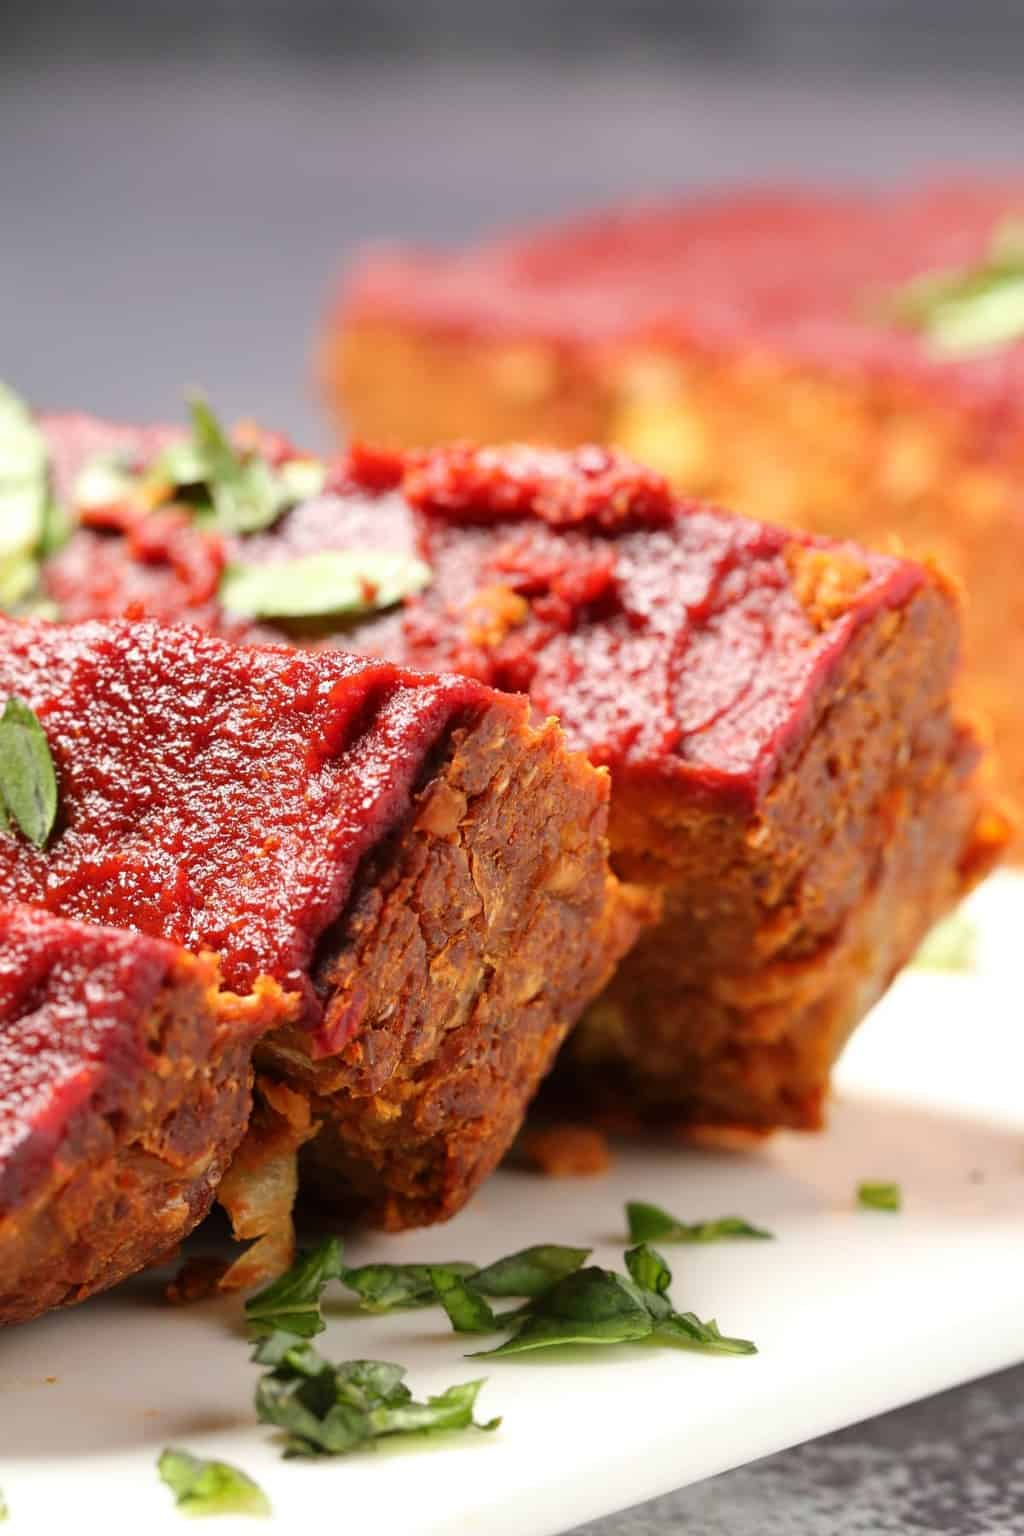 Vegan meatloaf topped with fresh basil on a white plate.